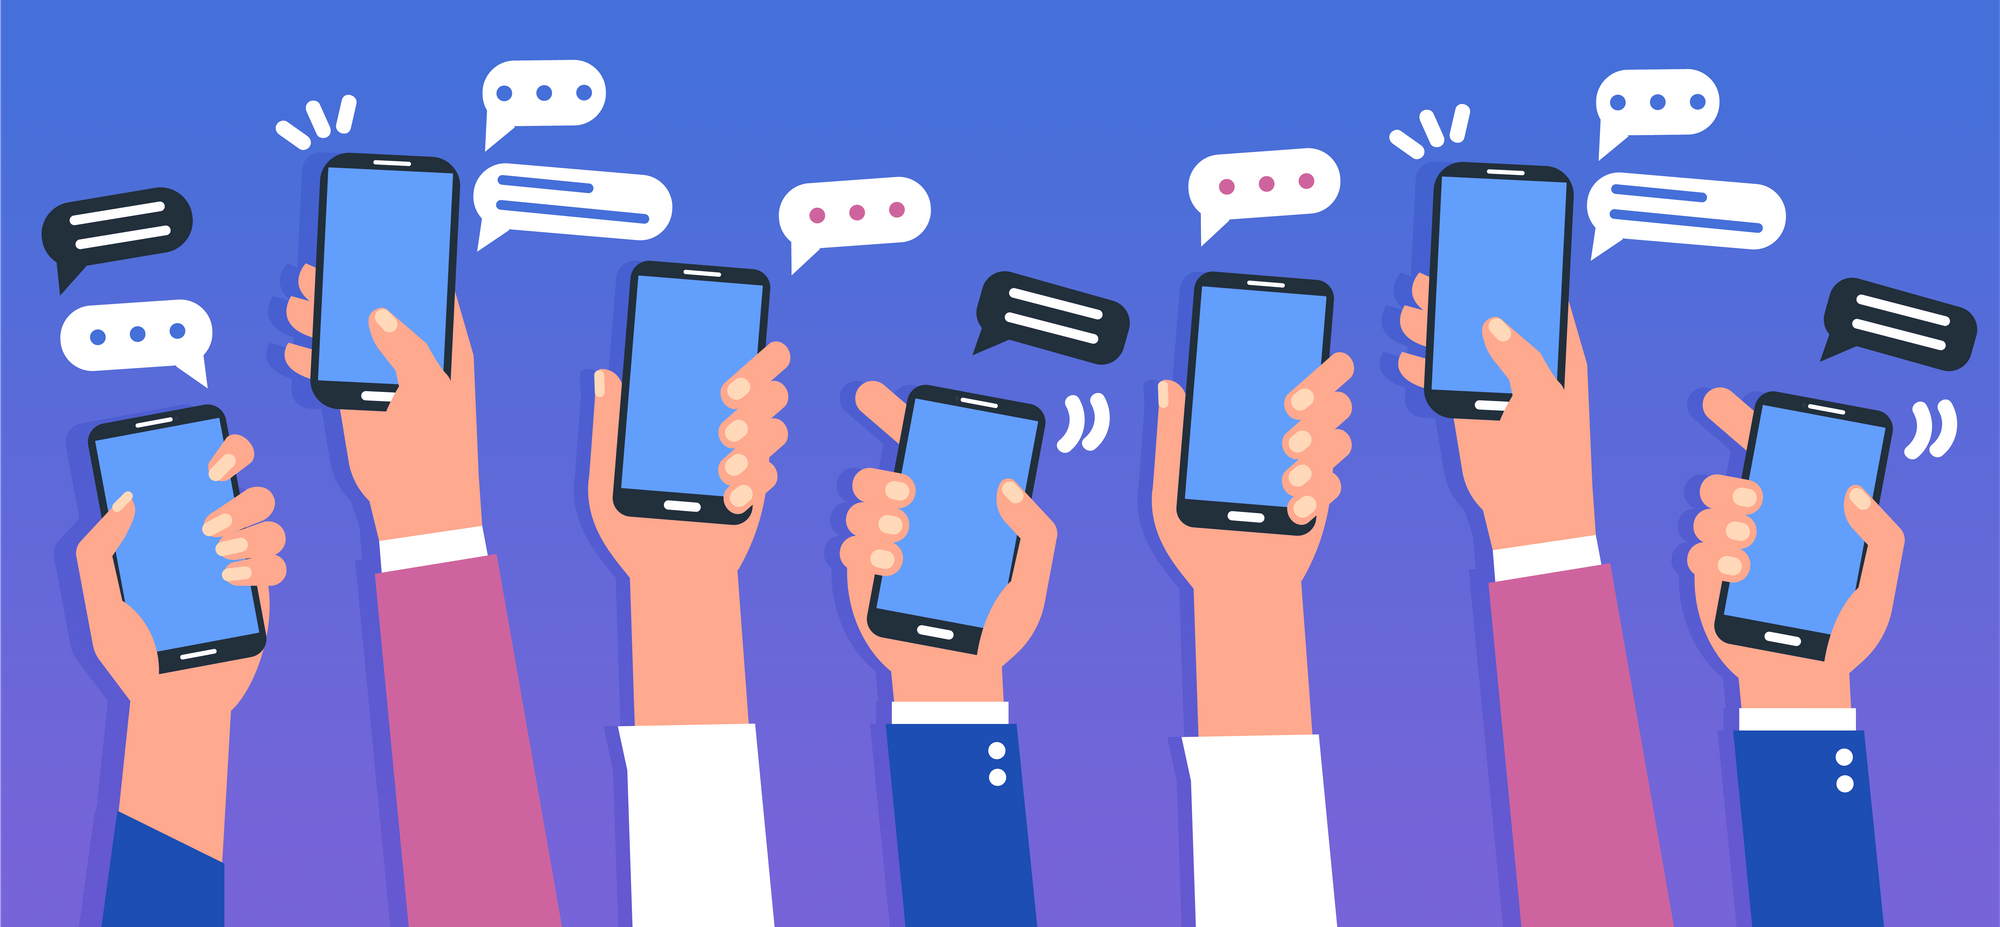 Looking for a Chat API? Here are some points to consider